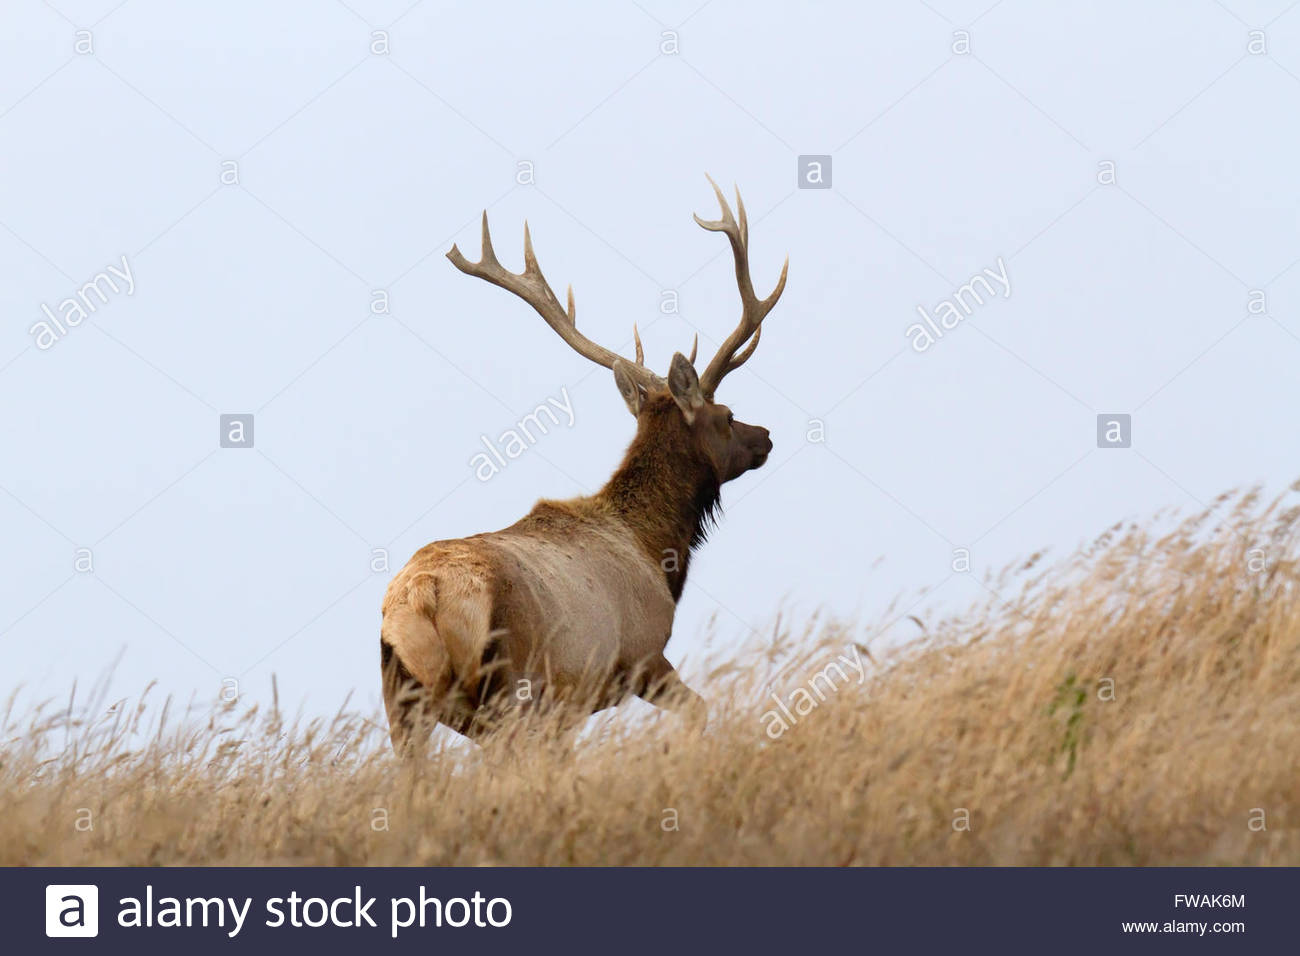 Male Tule Elk standing up in the grass, Point Reyes National Seashore, CA - Stock Image